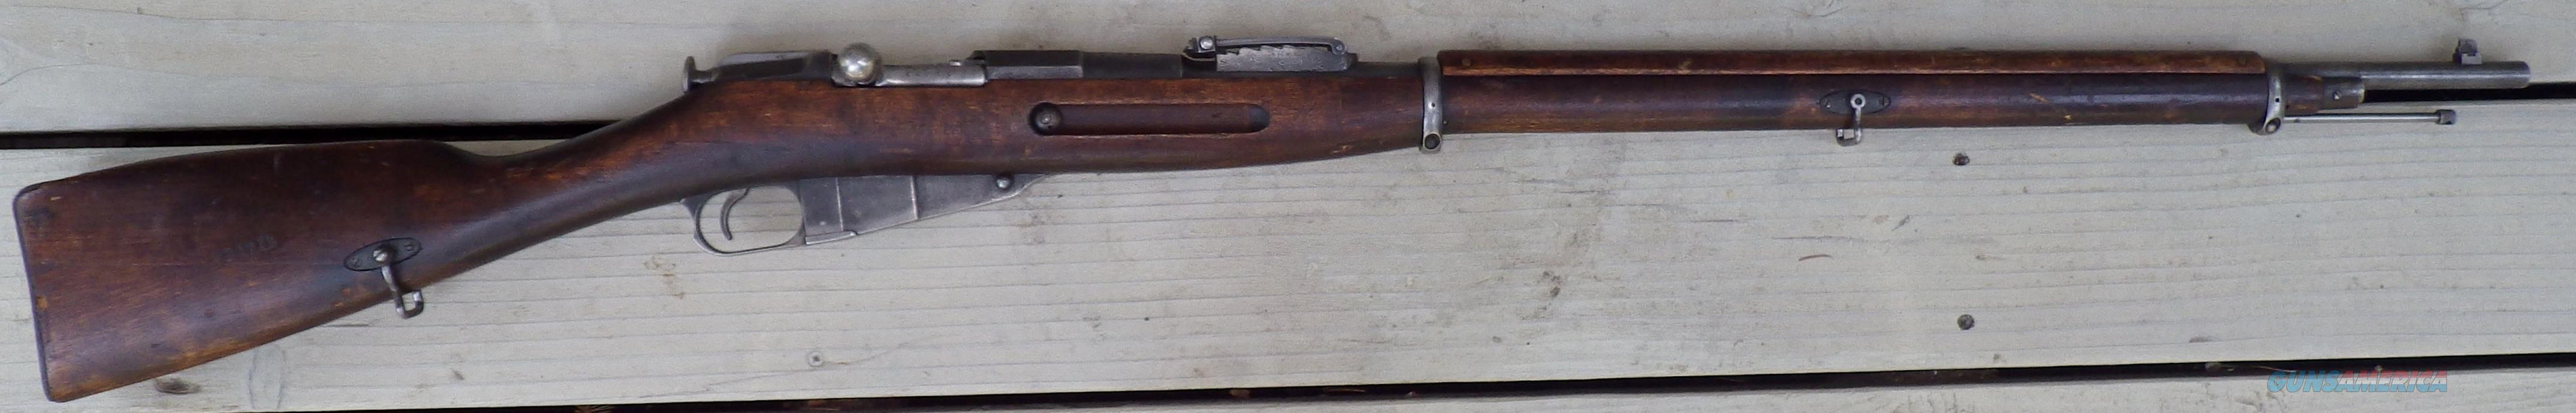 Mosin-Nagant 1891 Russian, 7.65x54mm, made 1905  Guns > Rifles > Military Misc. Rifles Non-US > Other